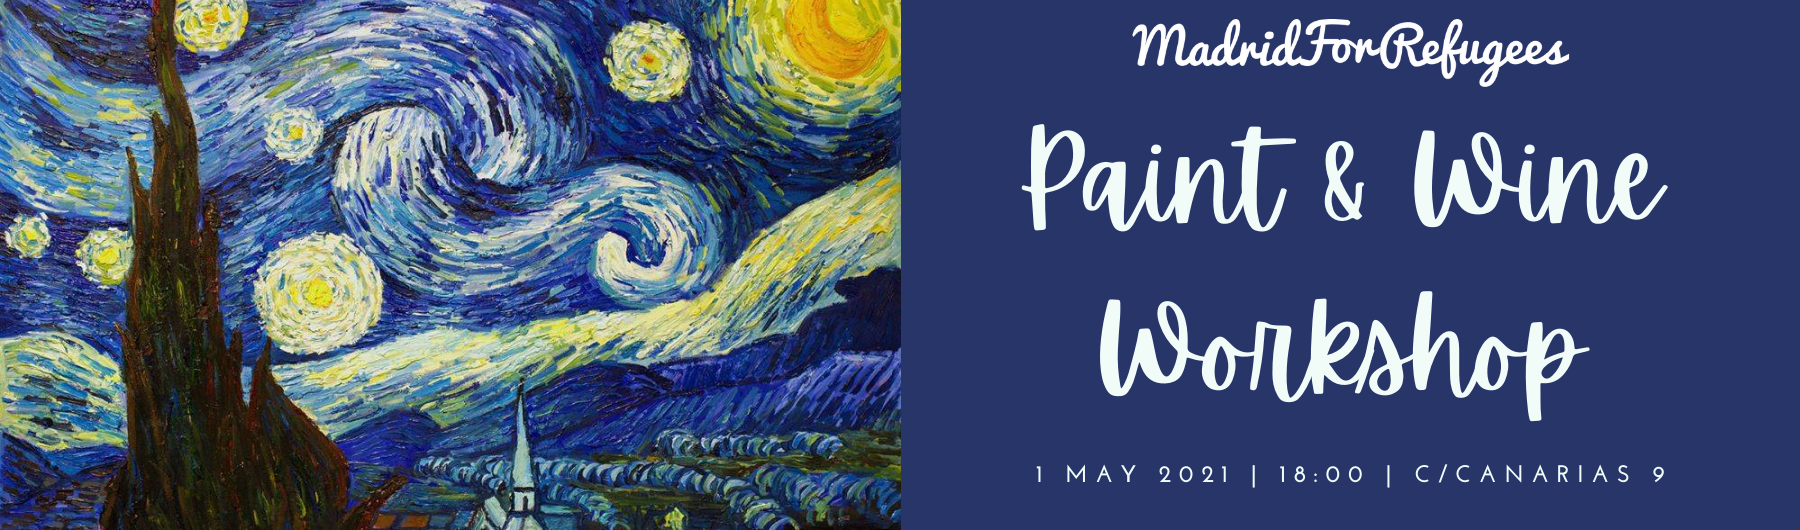 Paint & Wine Workshop: Starry Night